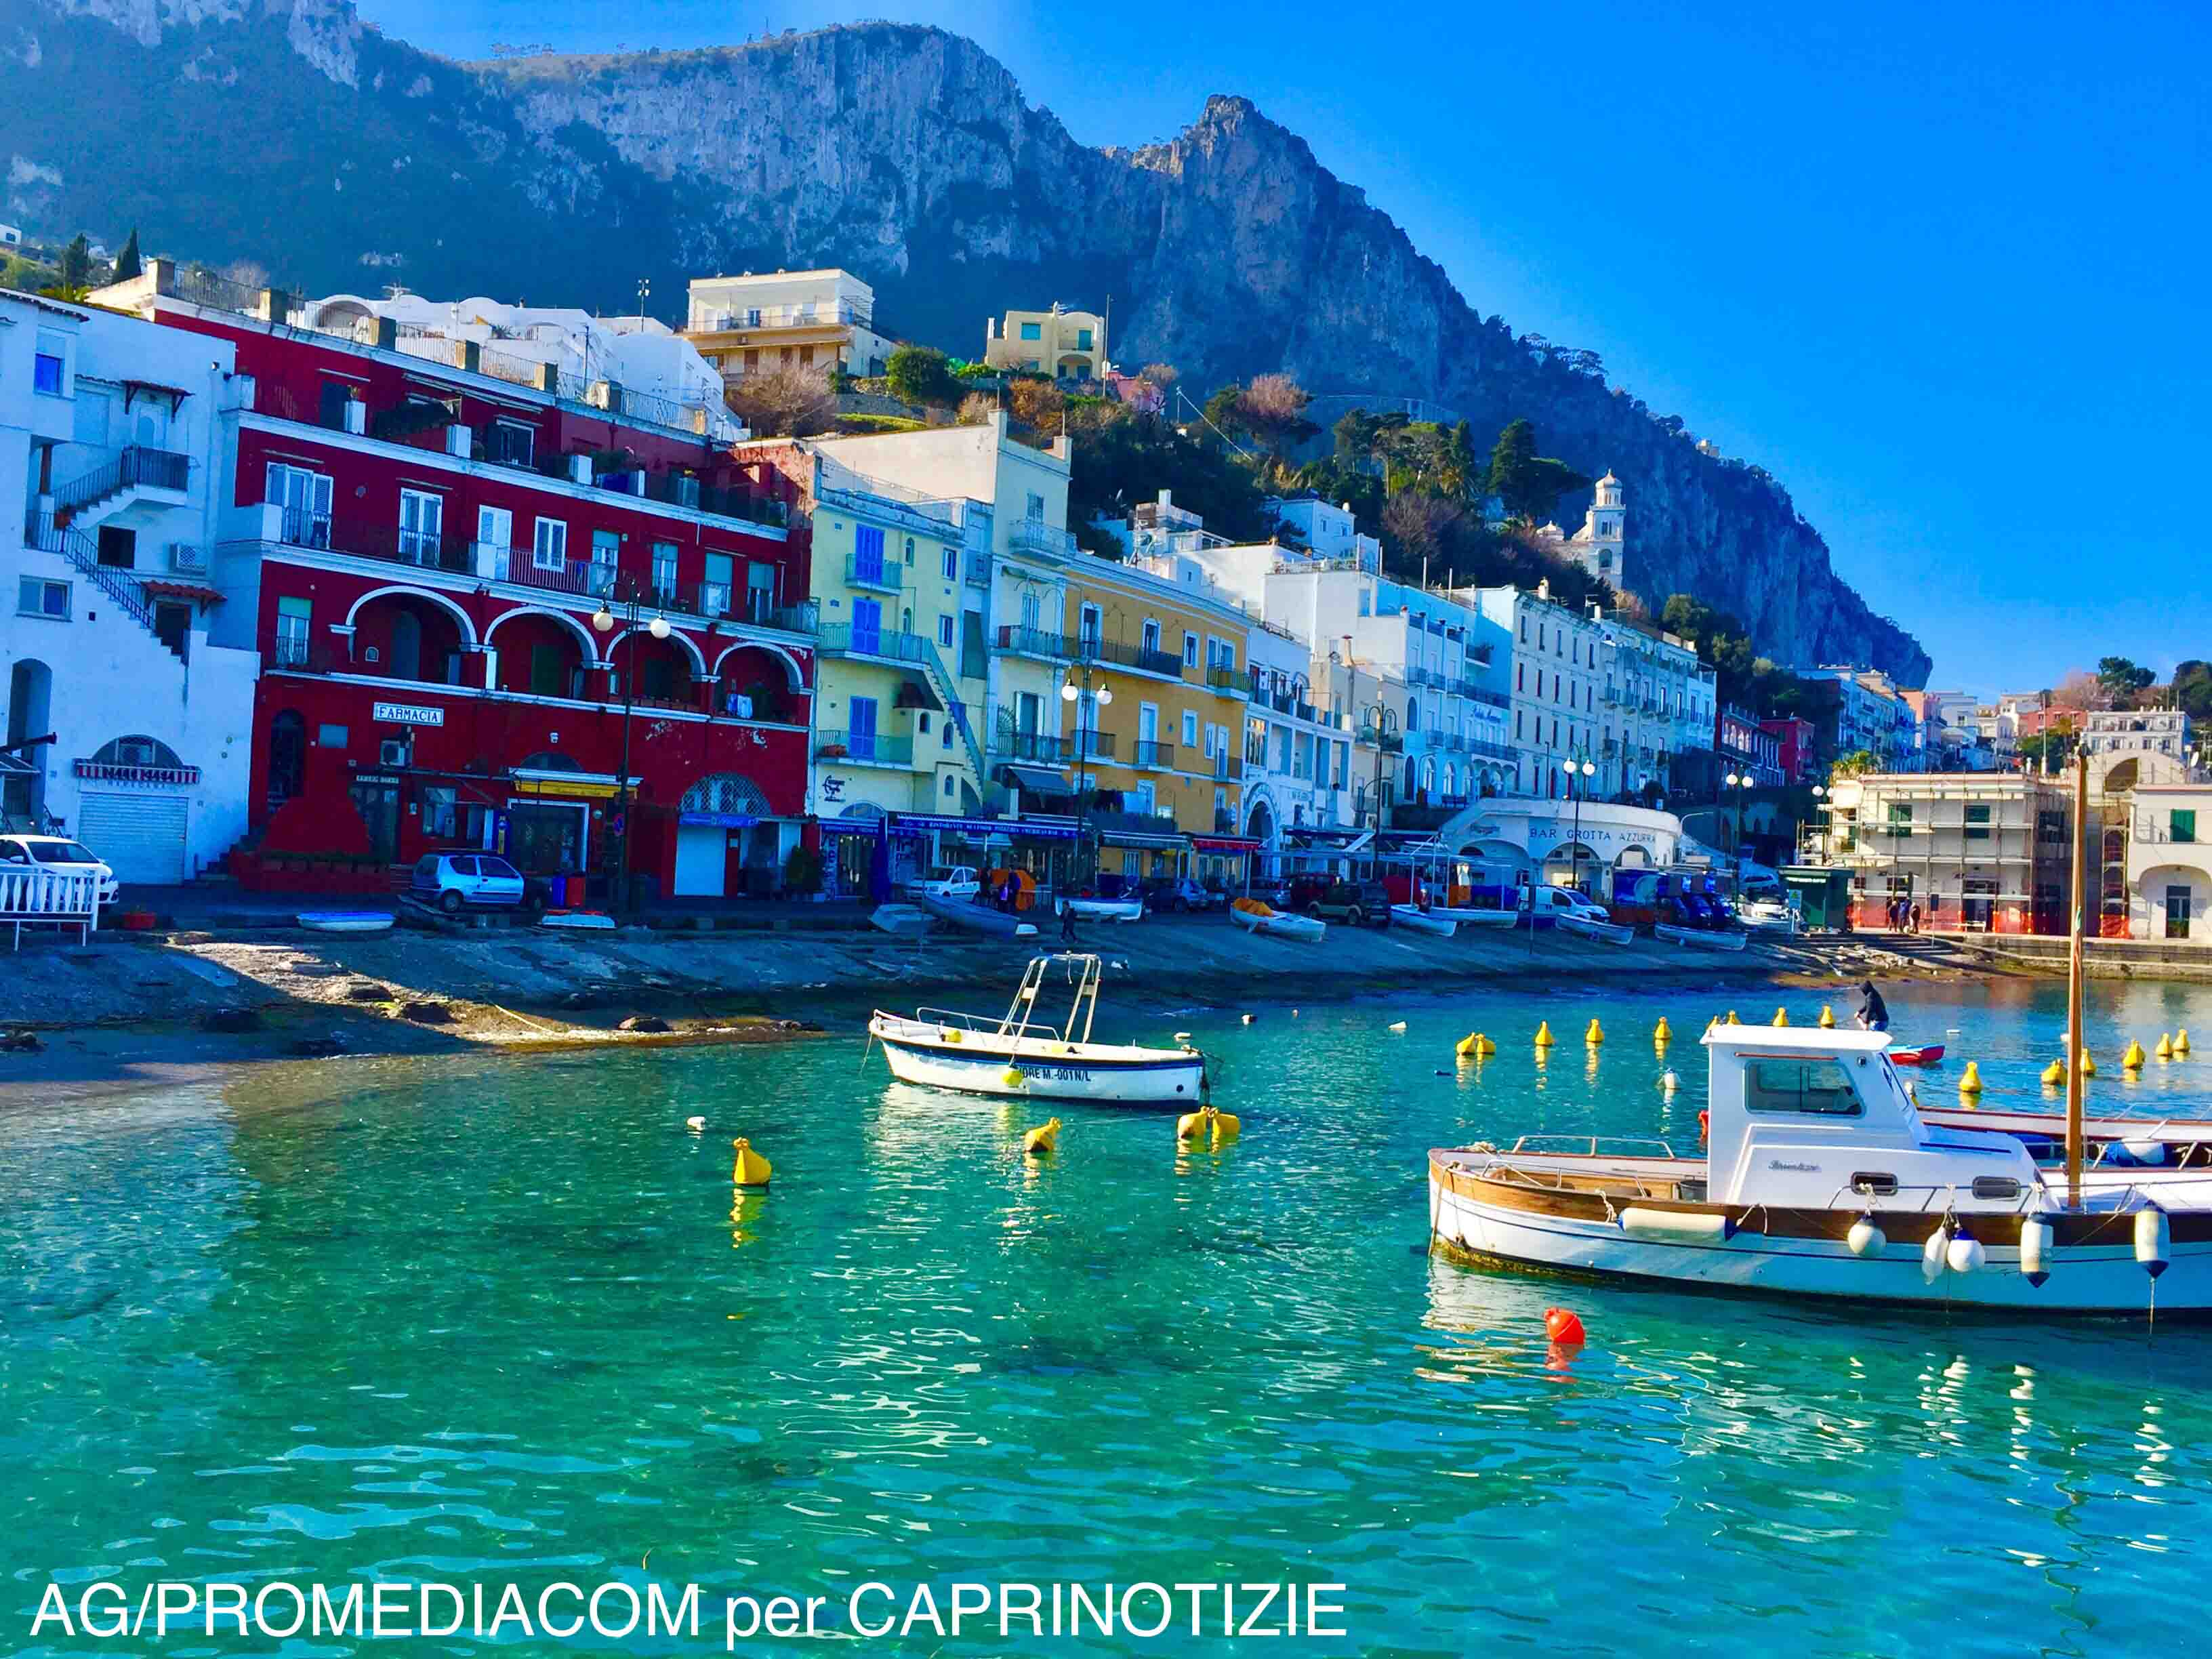 Capri: Il fascino del Porto dell'Isola in pieno Inverno (VIDEO)